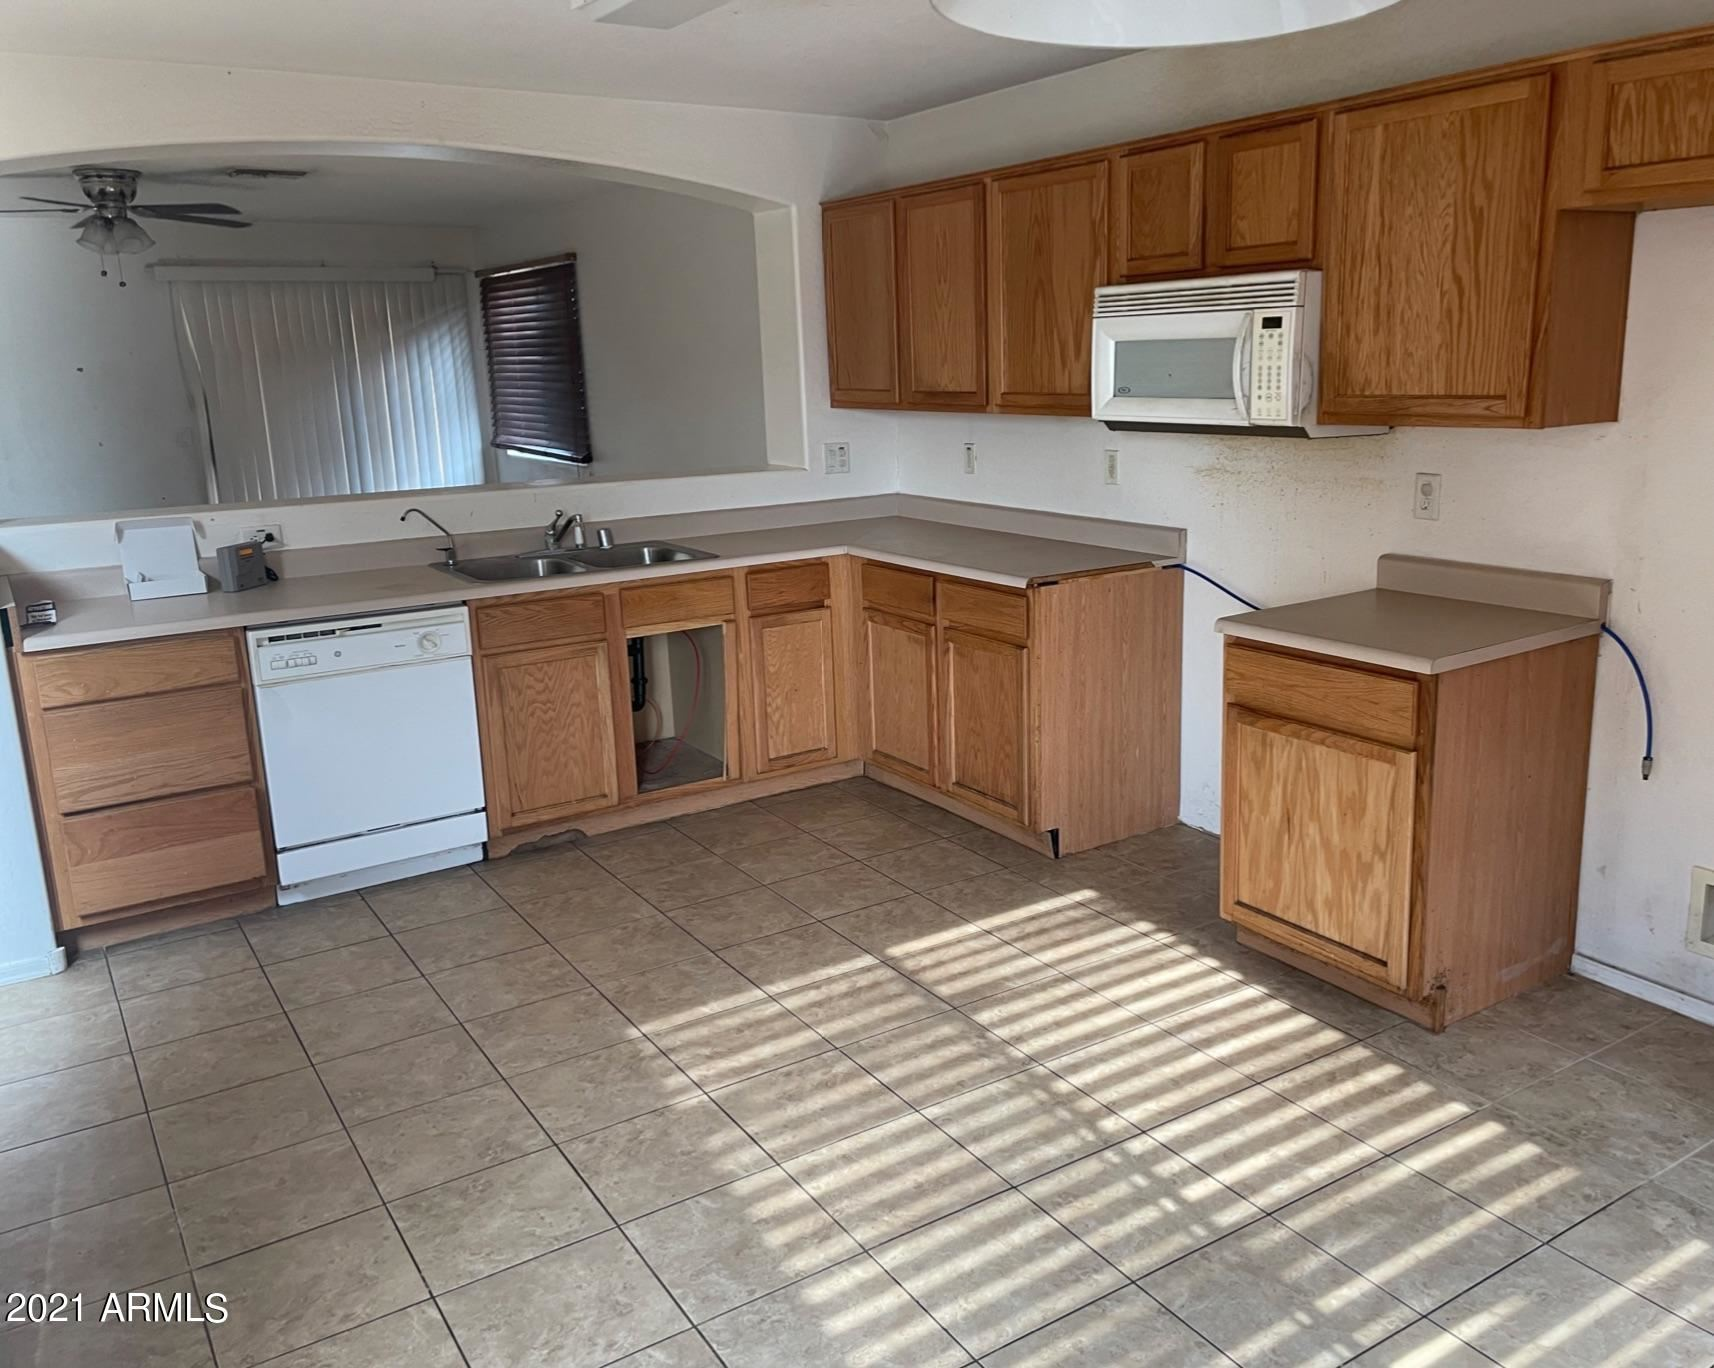 Photo of 2013 S 86th Drive #-, Tolleson, AZ 85353 (MLS # 6265297)